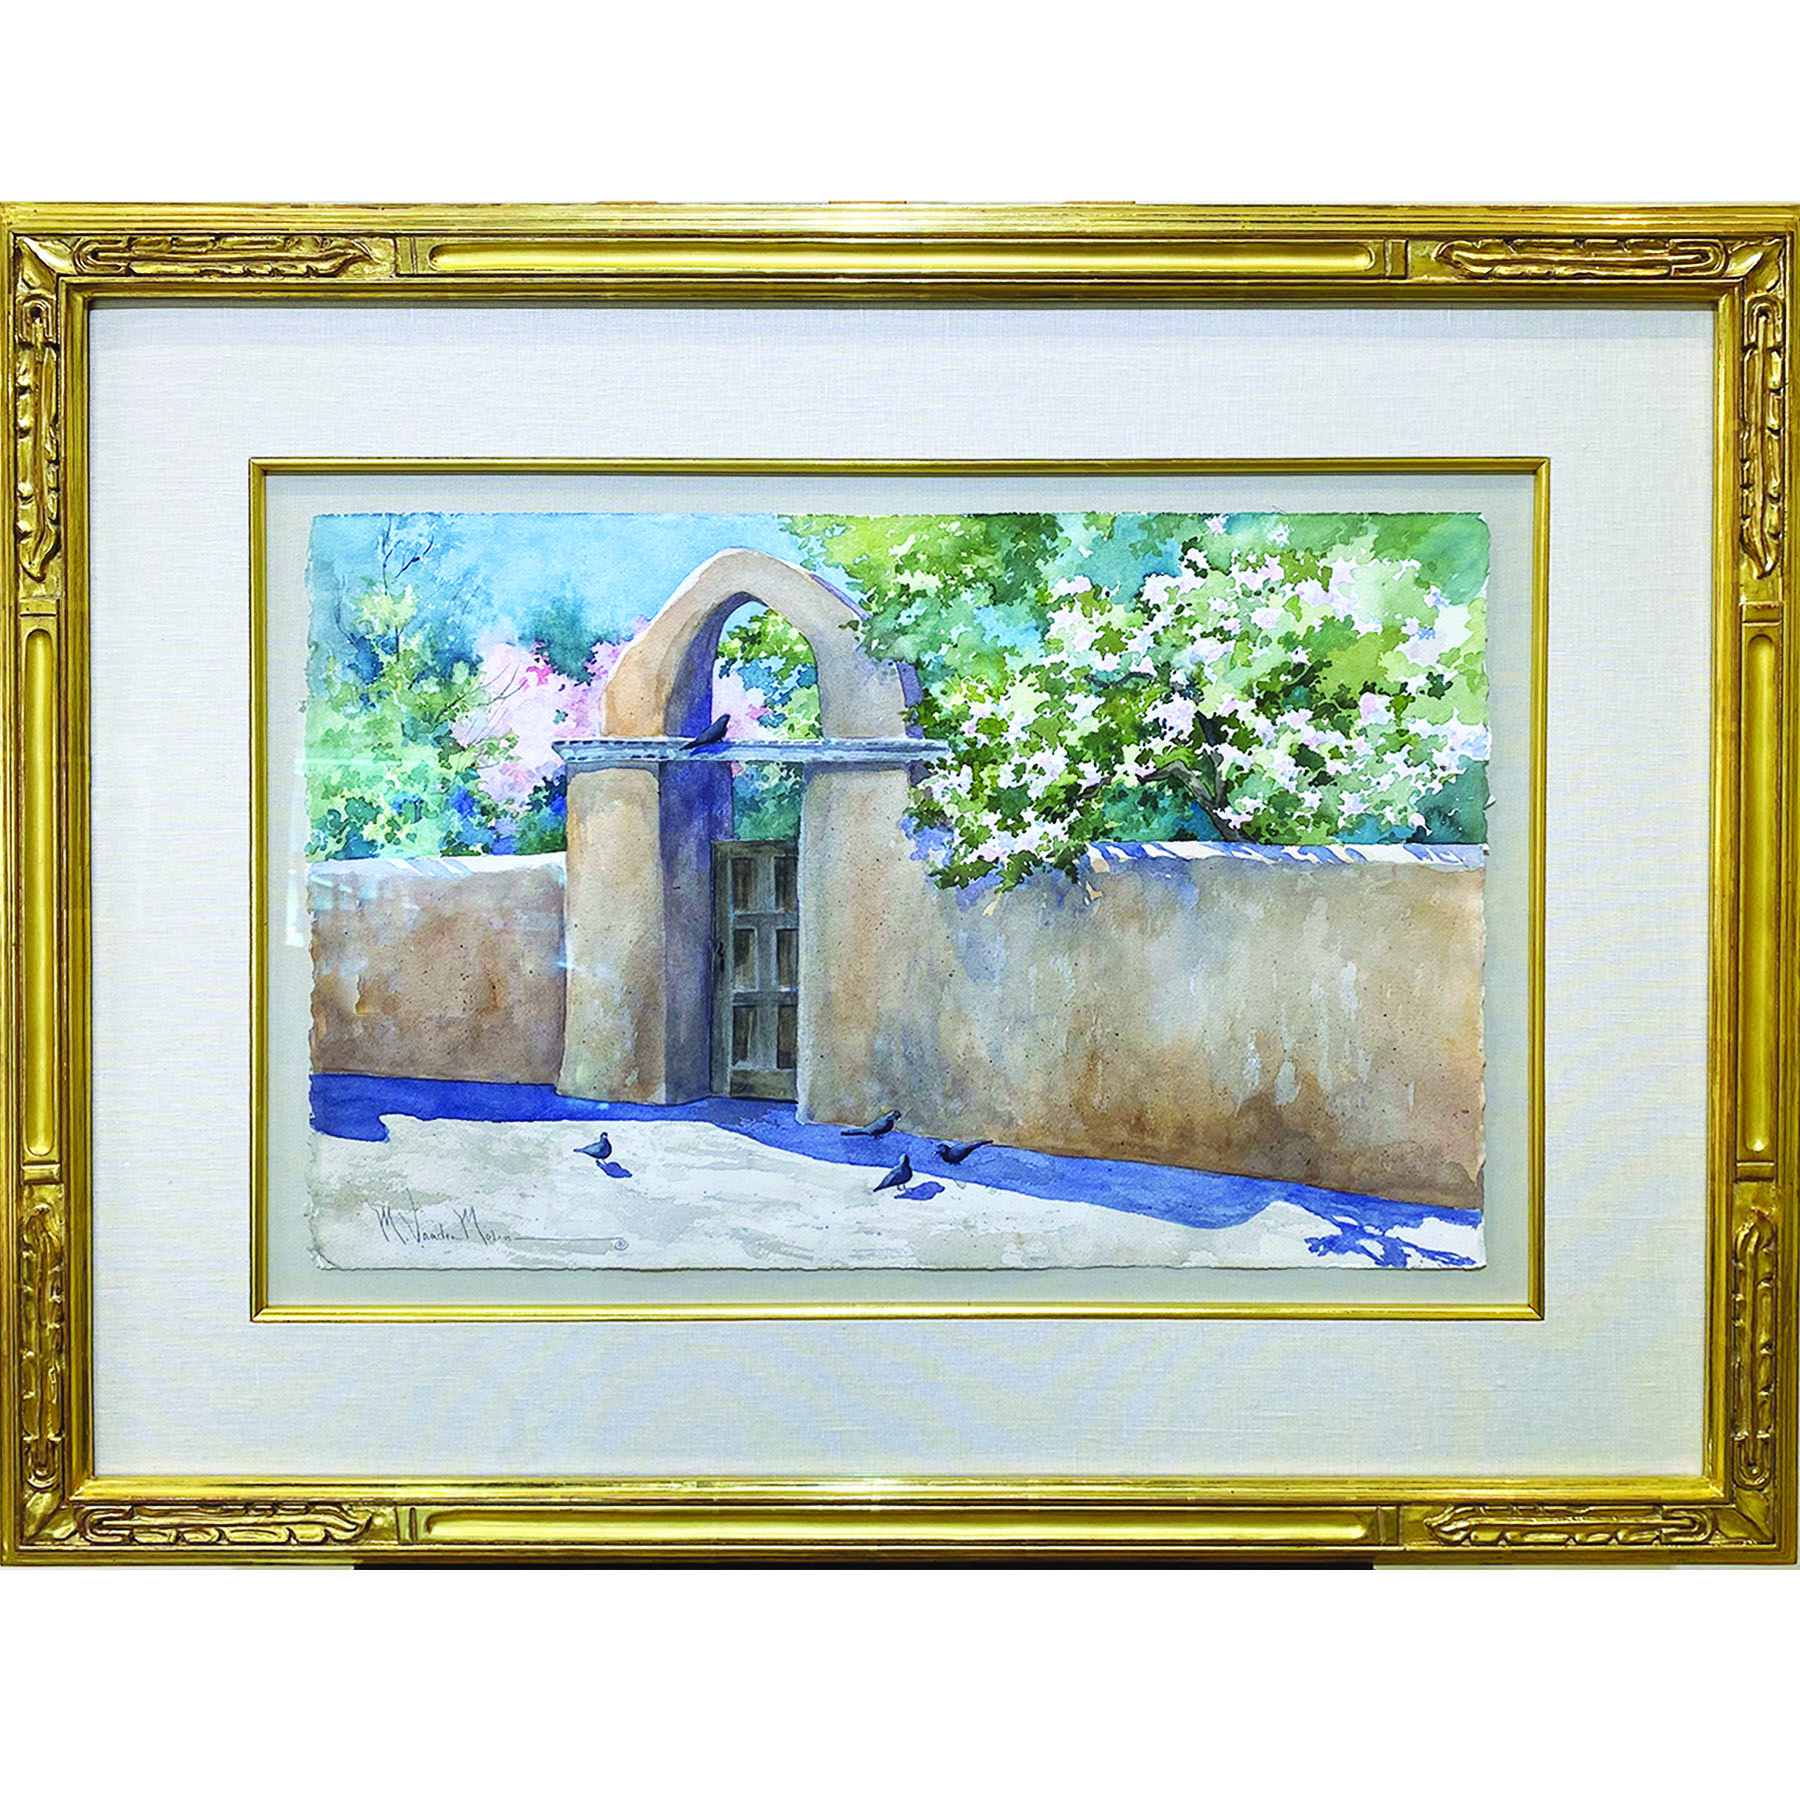 Watercolor painting in gold custom frame